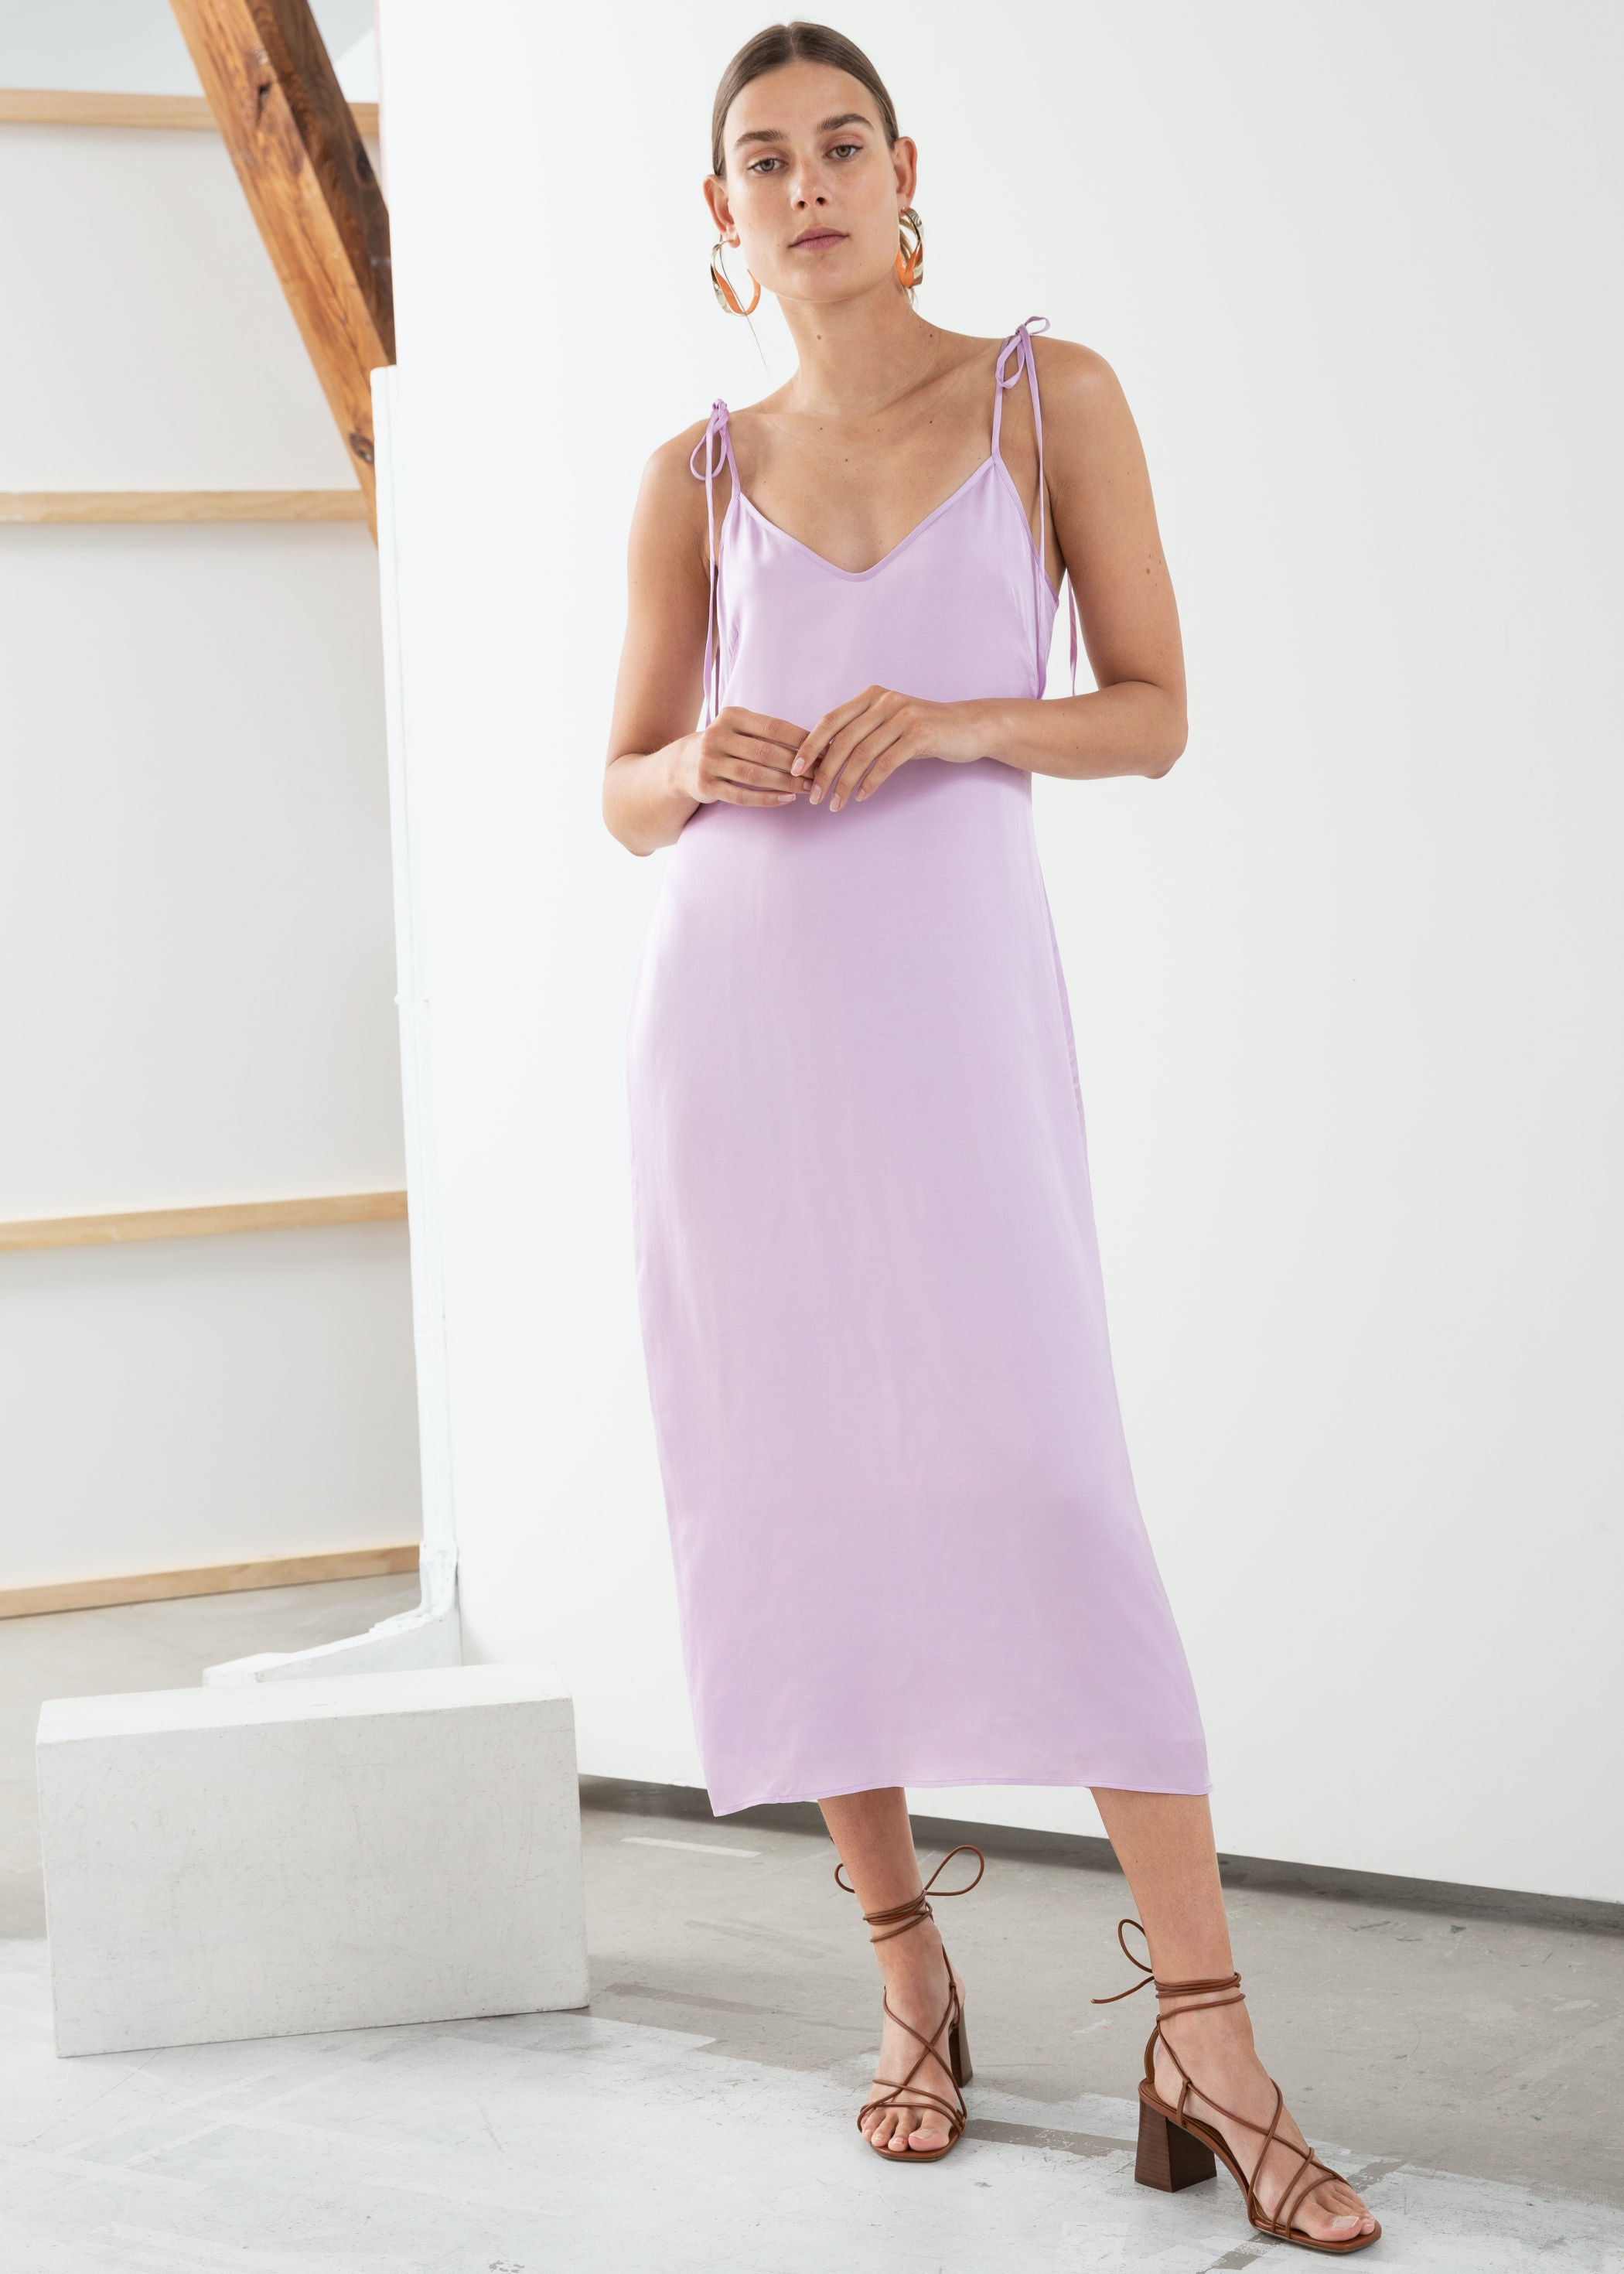 12 Wedding Guest Dresses Under 100 That Ll Get You Through A Packed Season Without Breaking The Bank,Plus Size Dresses For Beach Wedding